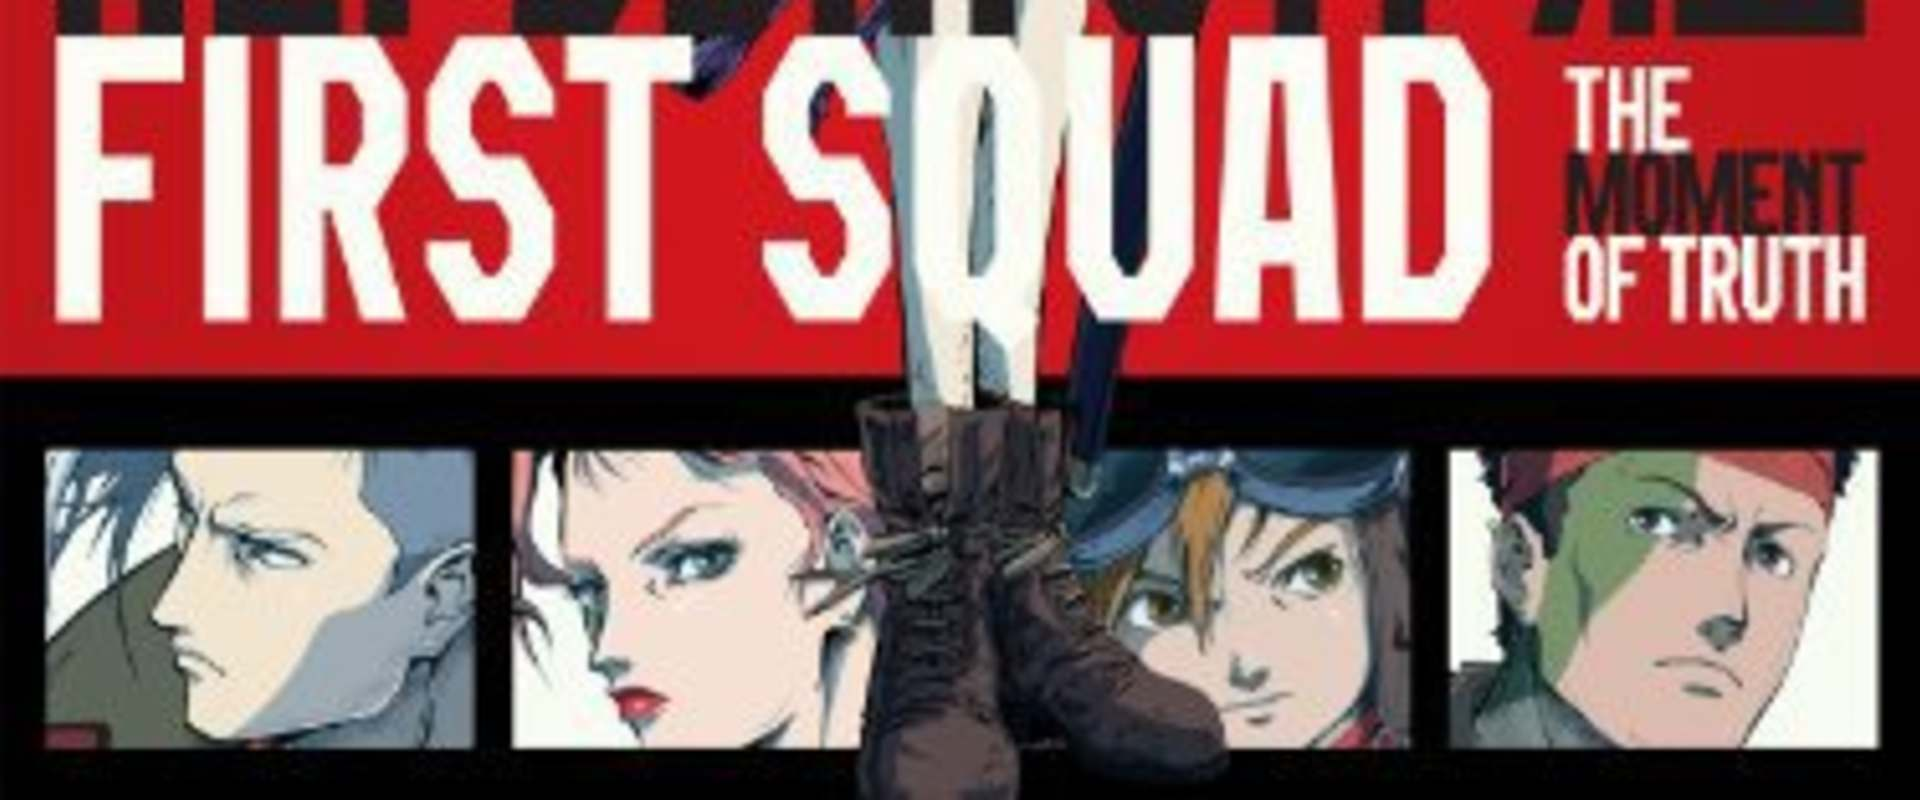 First Squad: The Moment of Truth background 1